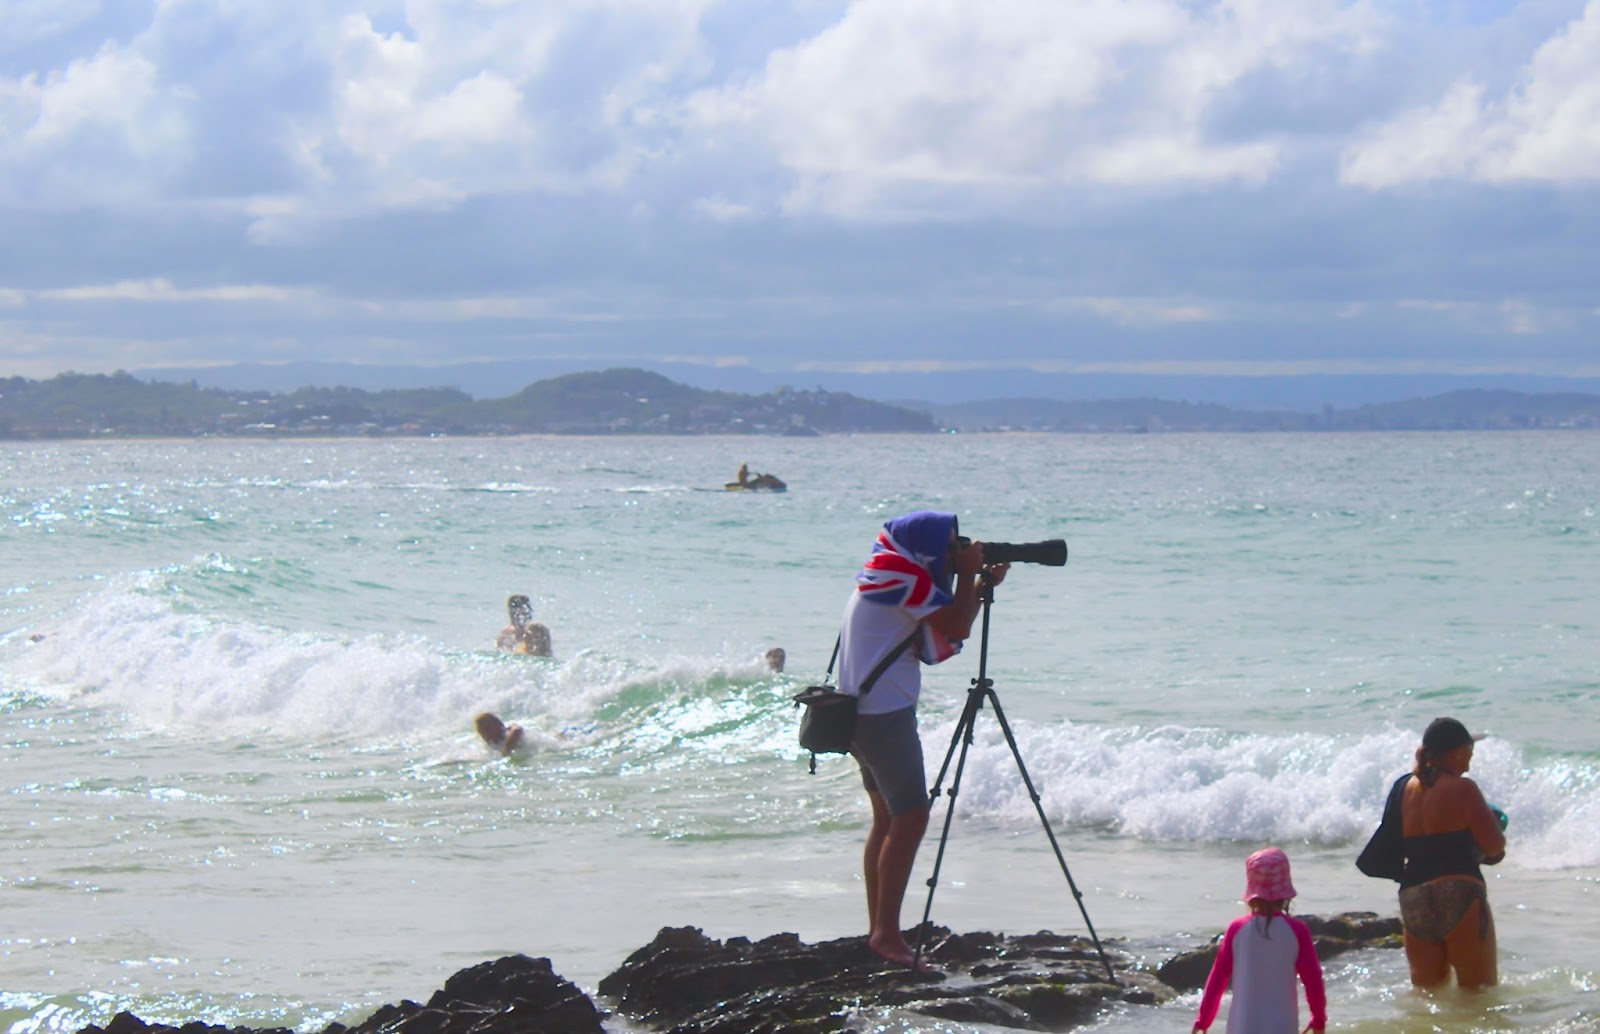 A camera operator at Surf Event